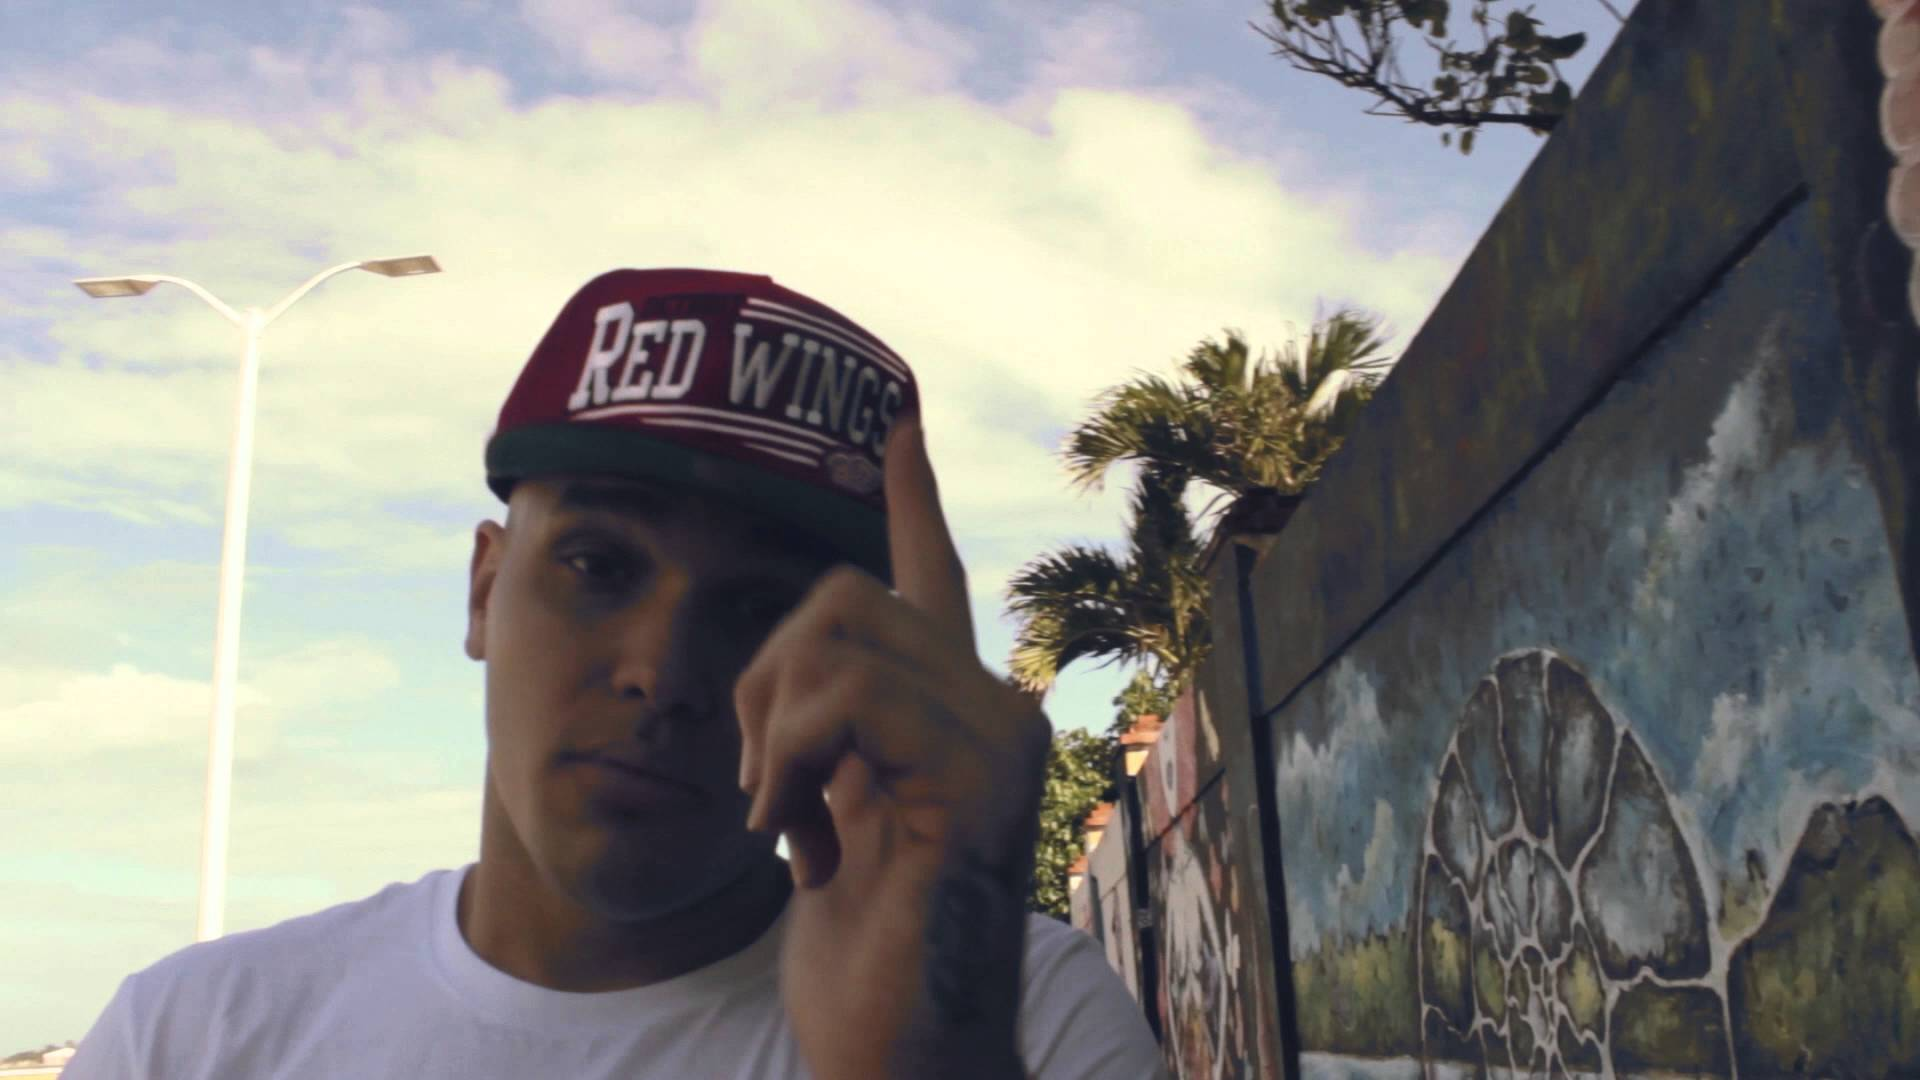 eme carrion time to kill officia - Eme Carrion – Time to Kill (Official Video)